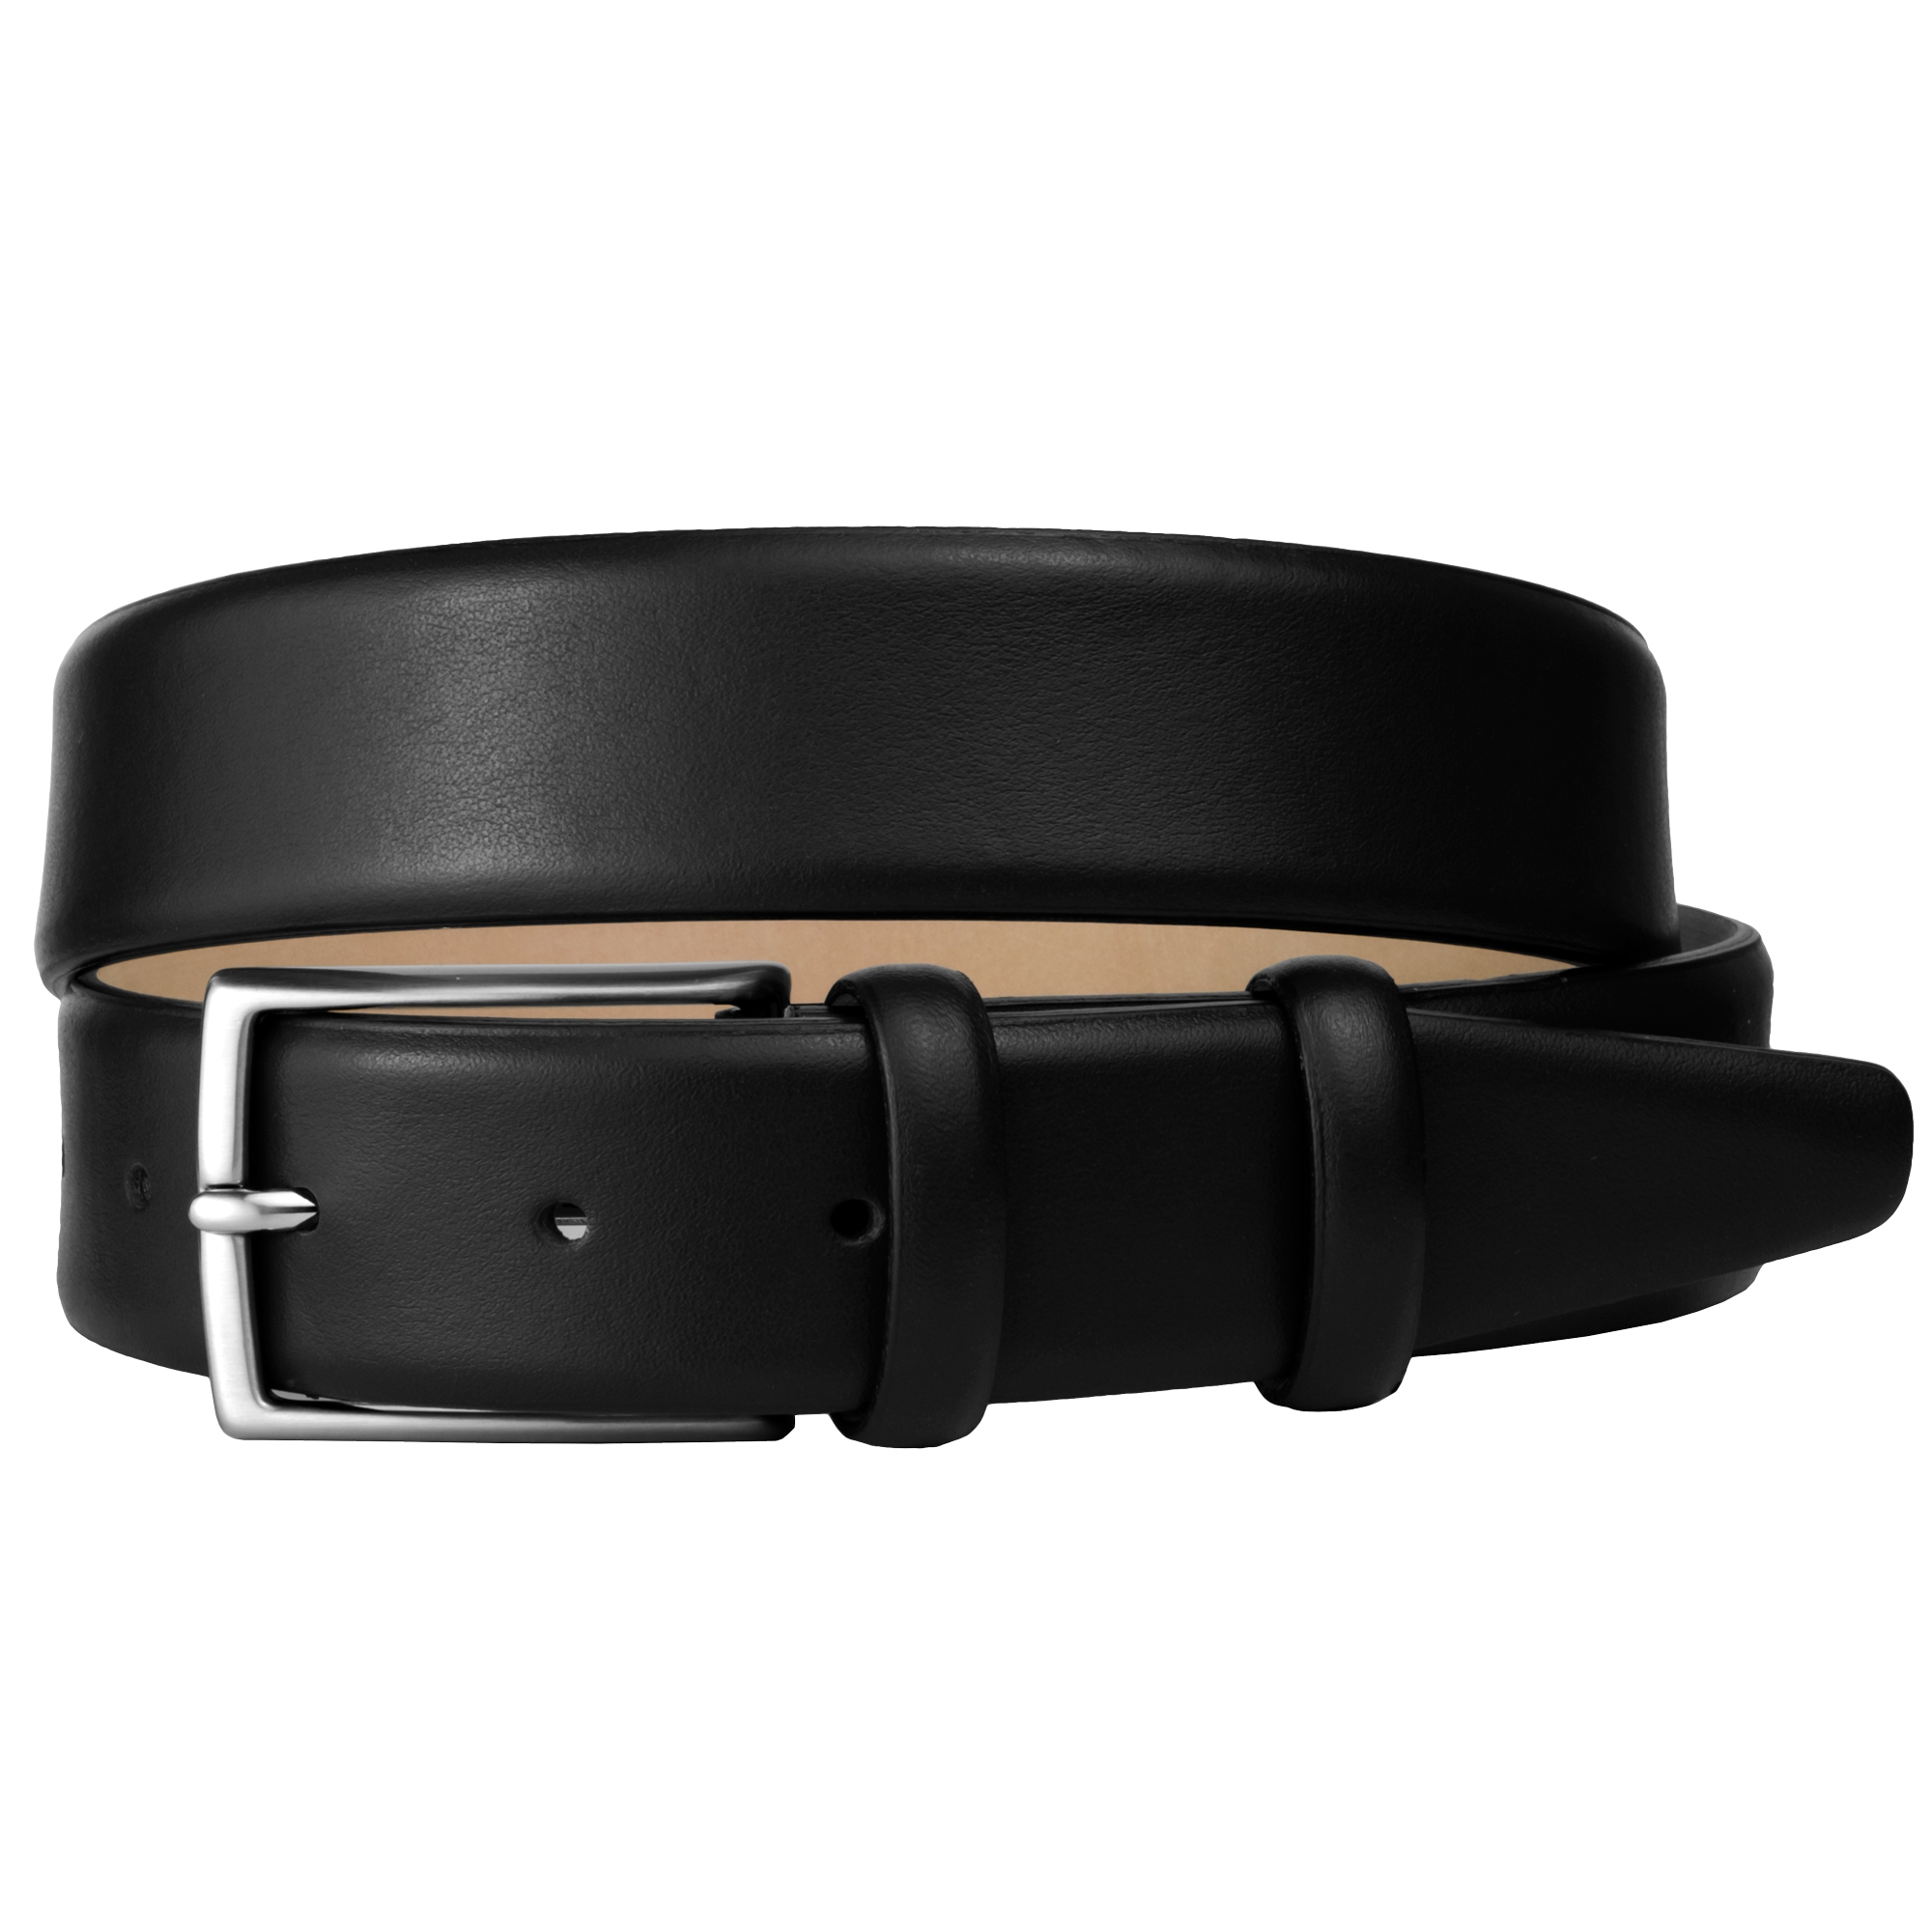 Western Belts & Buckles for Men - Sheplers / Men's Western Belts. Men's Western Belts. There are products available. Shop by size for fastest delivery Men's Western Belts Brighton Onyx Tapered Leather Dress Belt $ (64 Reviews) Tony Lama Scalloped Leather Belt $